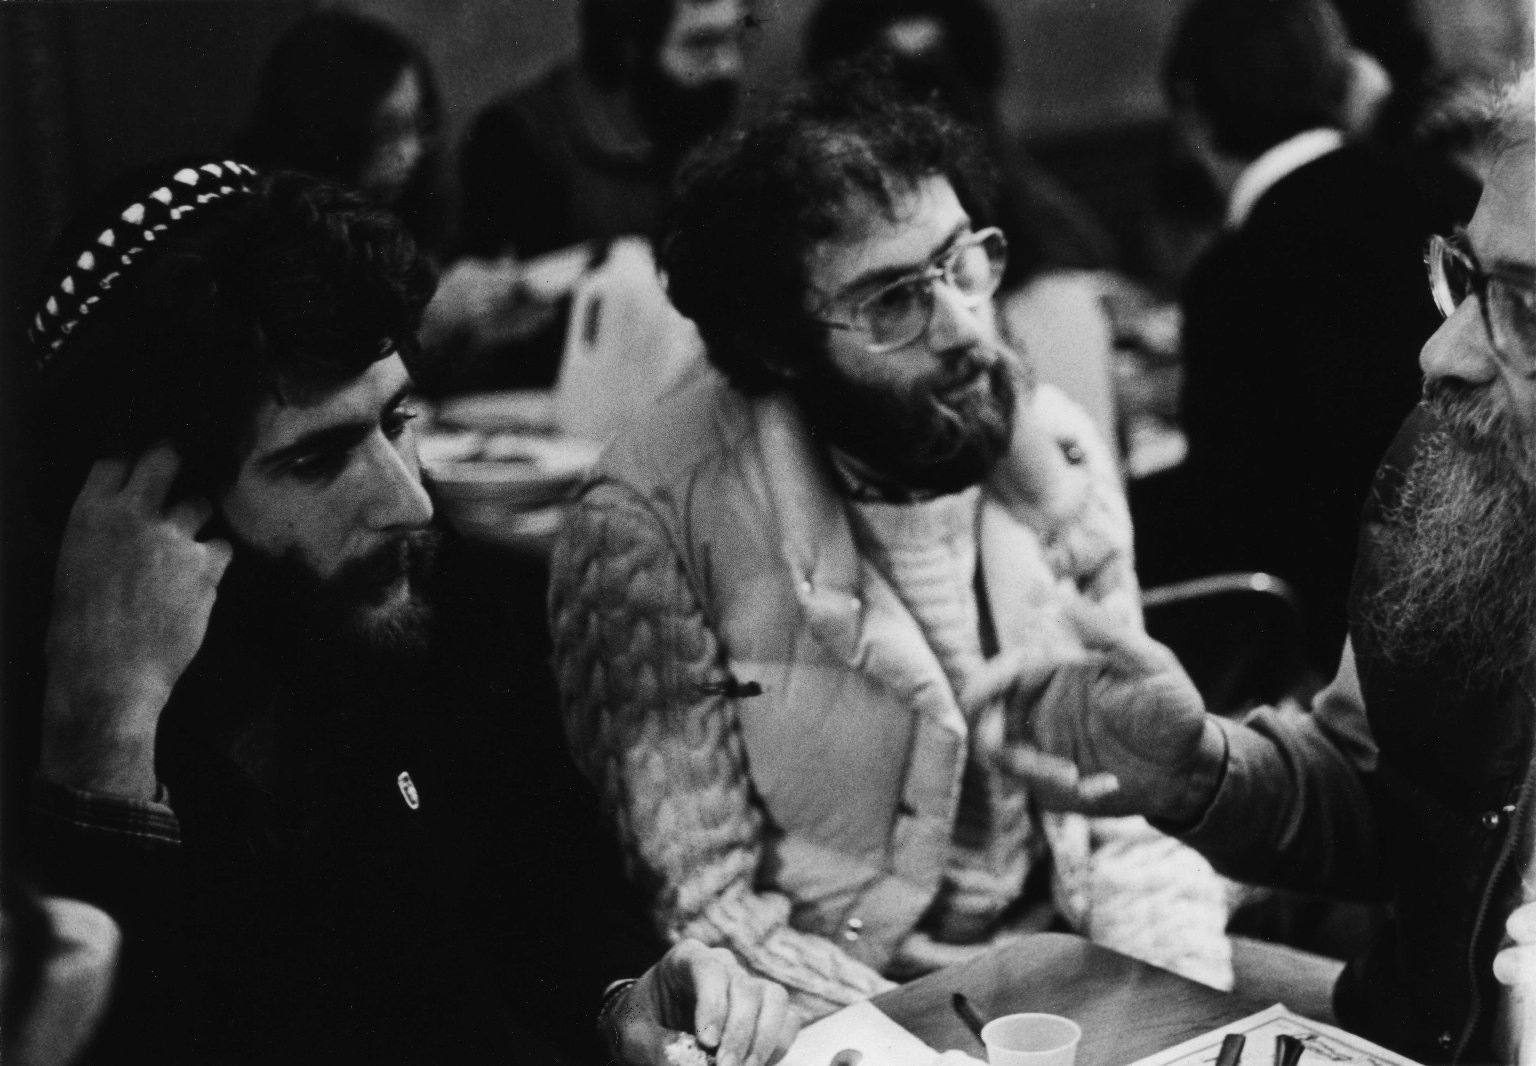 Candid photo of an unidentified man, Rabbi Lawrence Kushner, and Rabbi Zalman Schachter in conversation, ca. 1980.